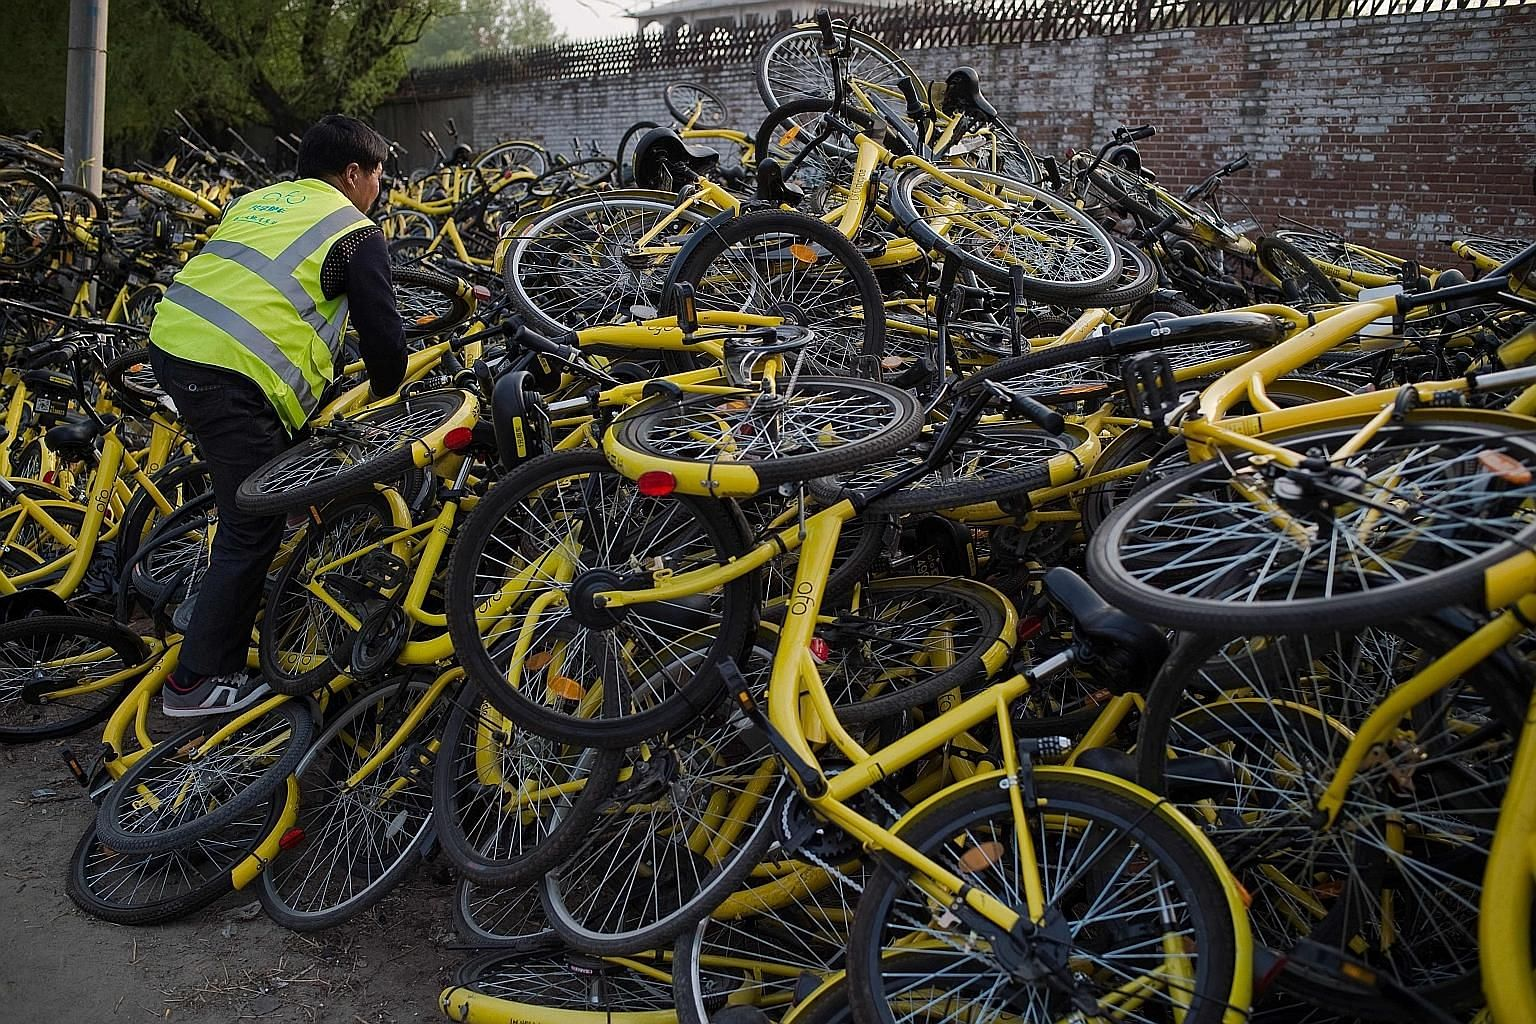 A pile of Ofo bicycles at a repair centre in Beijing last month. Some 30 bike-sharing companies have placed over three million bikes on streets around China, according to state media.